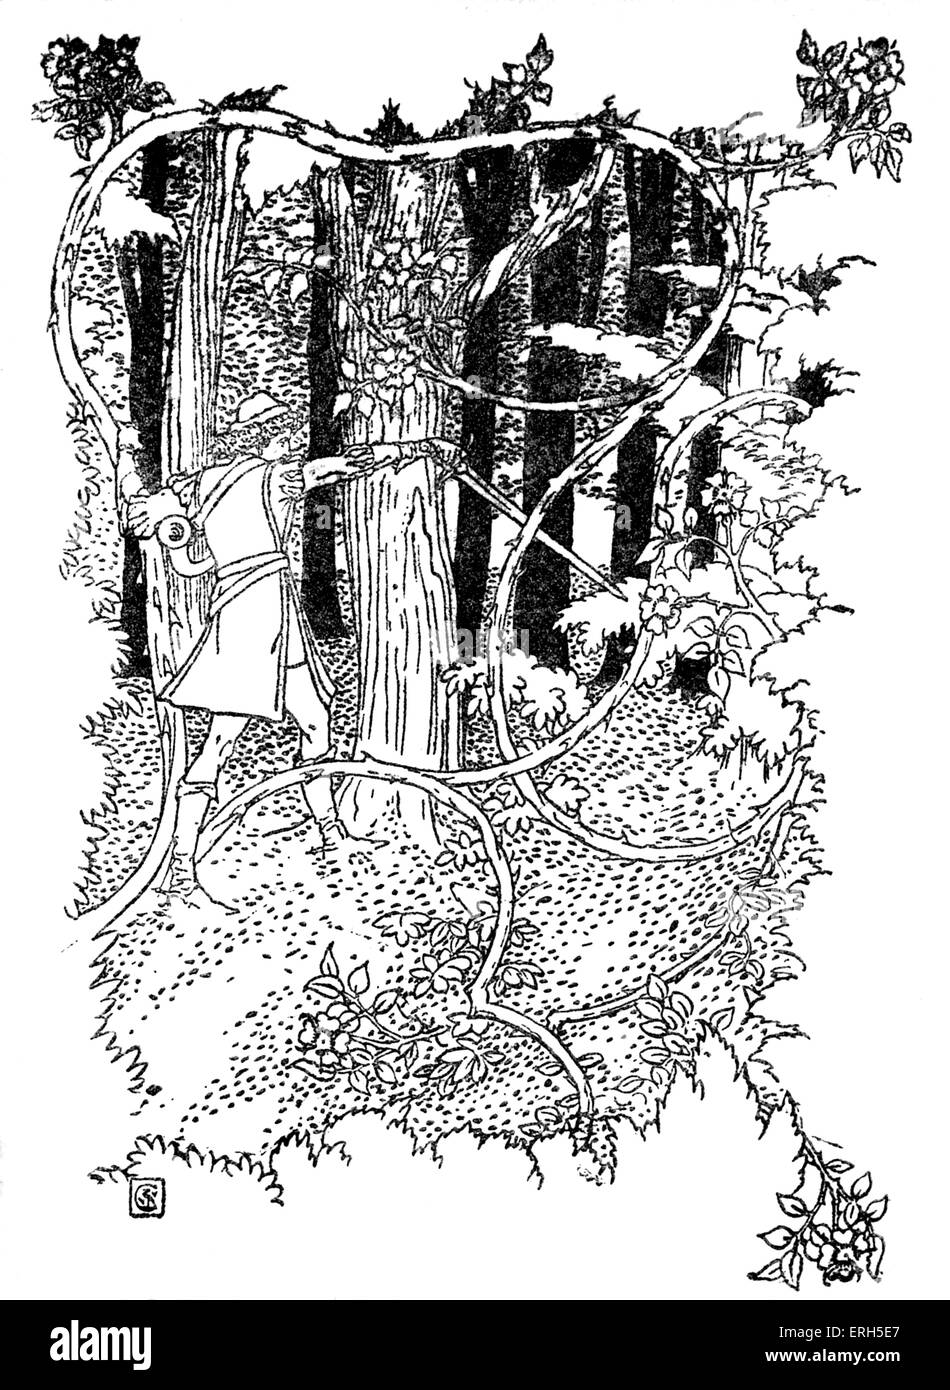 Sleeping Beauty written and illustrated by Walter Crane and published in 1914. The scene depicts the prince cutting - Stock Image